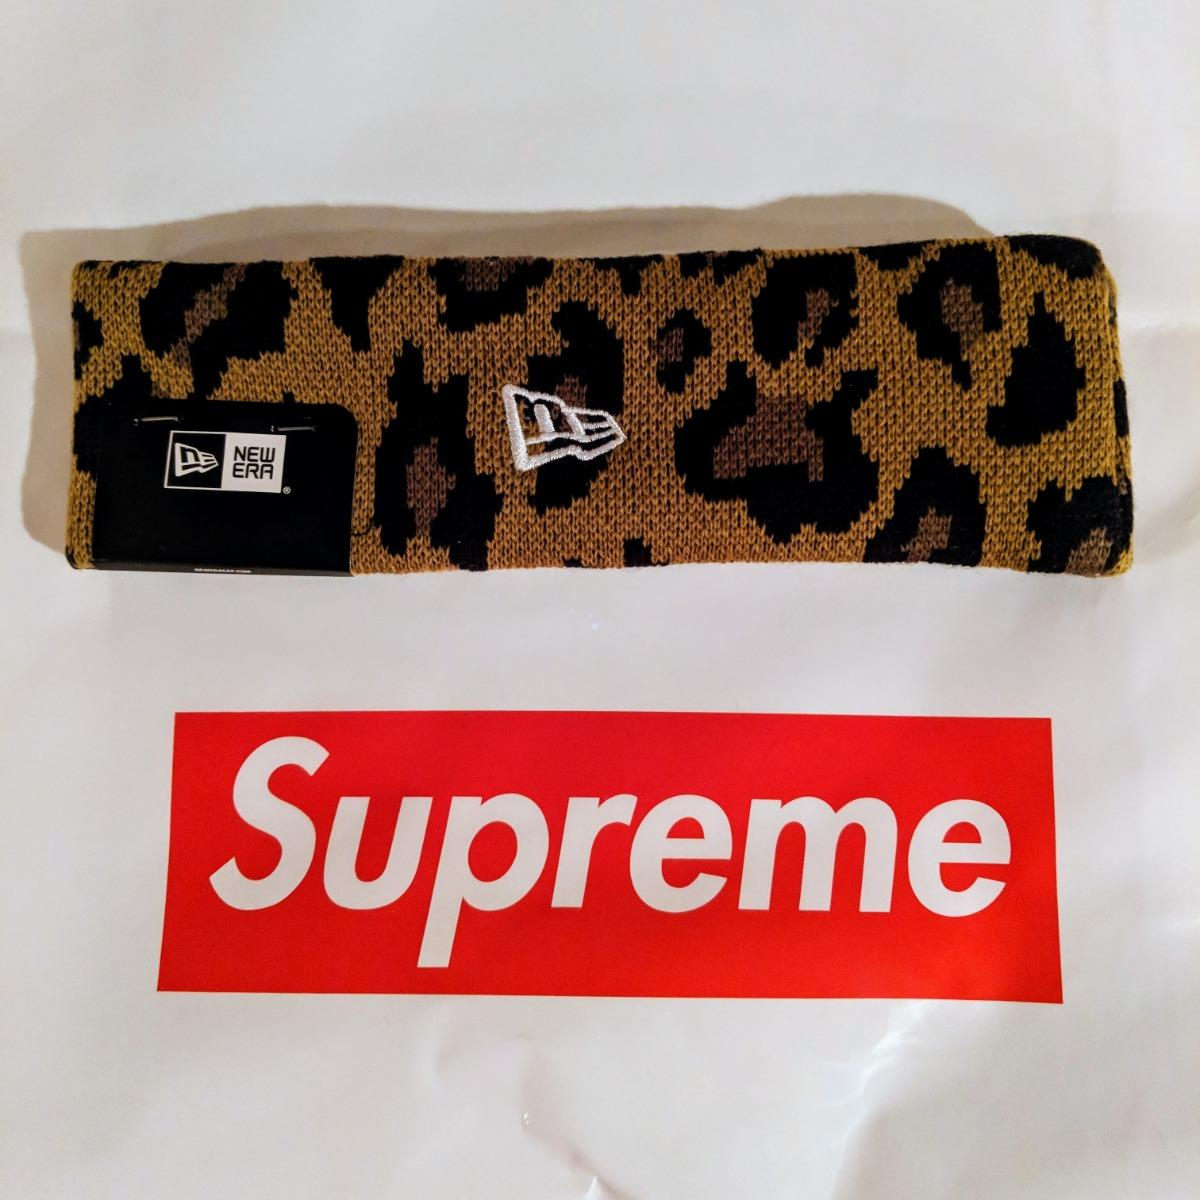 4206a4082ad Supreme x New Era Big Logo Headband • Hats • Strictlypreme